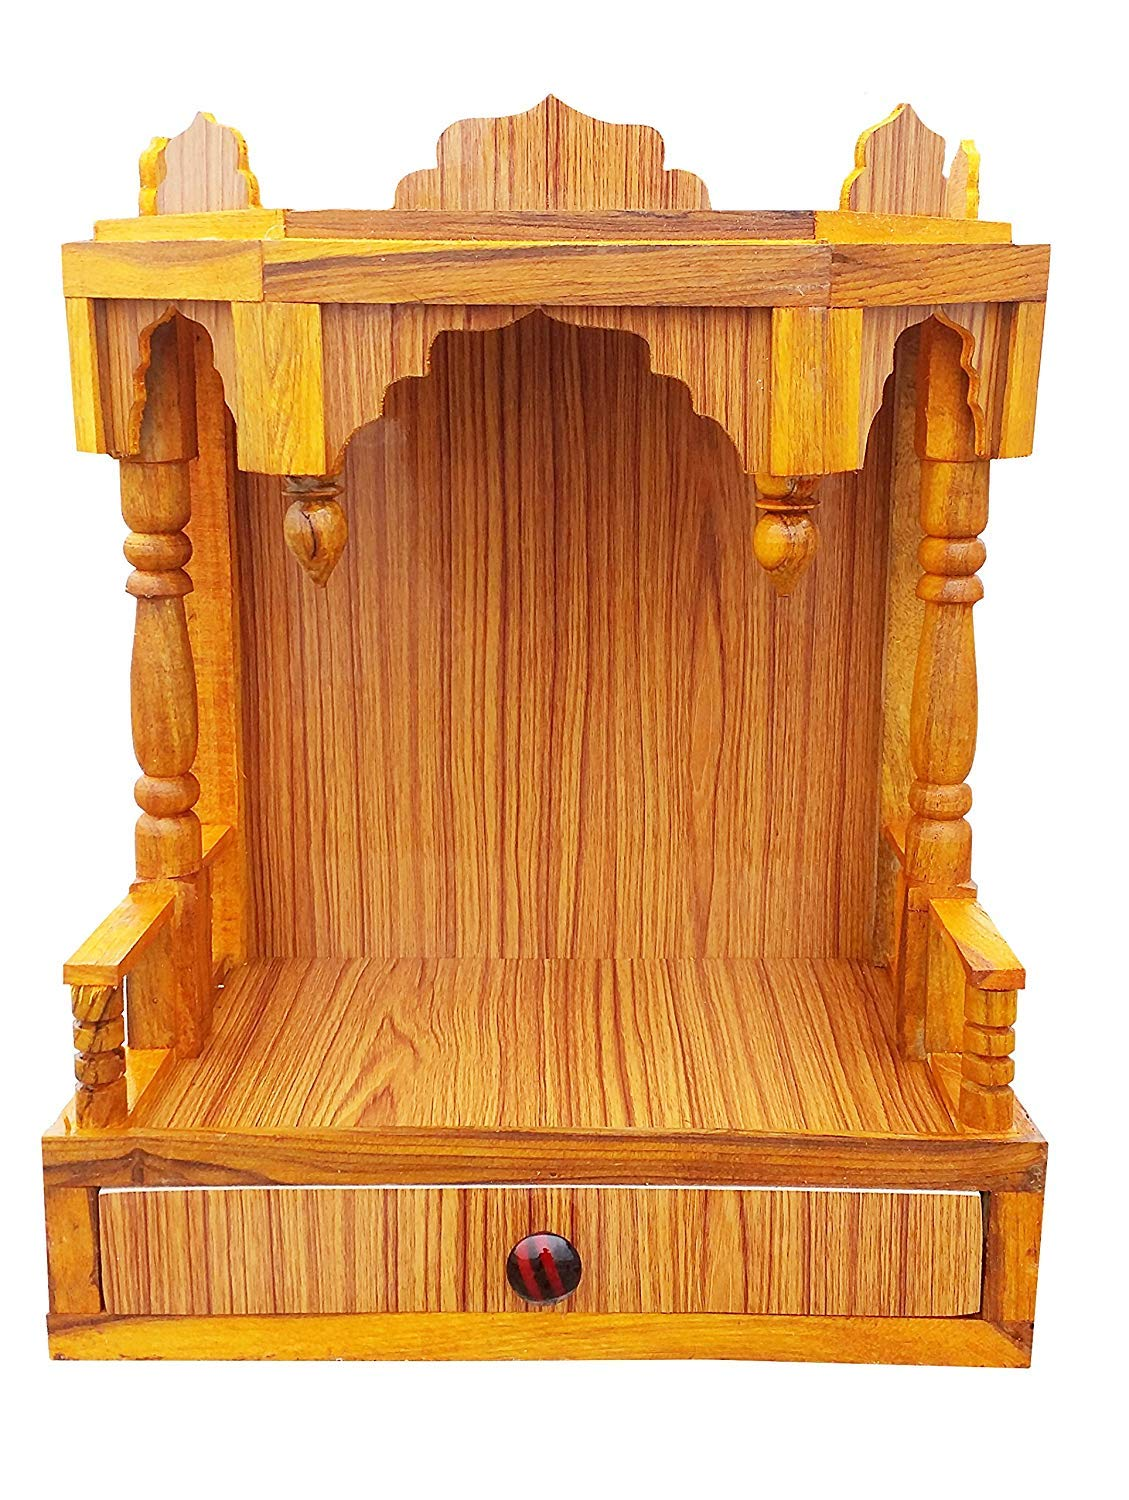 rs handicraft and marbles Wooden Beautiful Plywood Mandir Pooja Temple  (Height-52, Length-41, Width-23 cm)